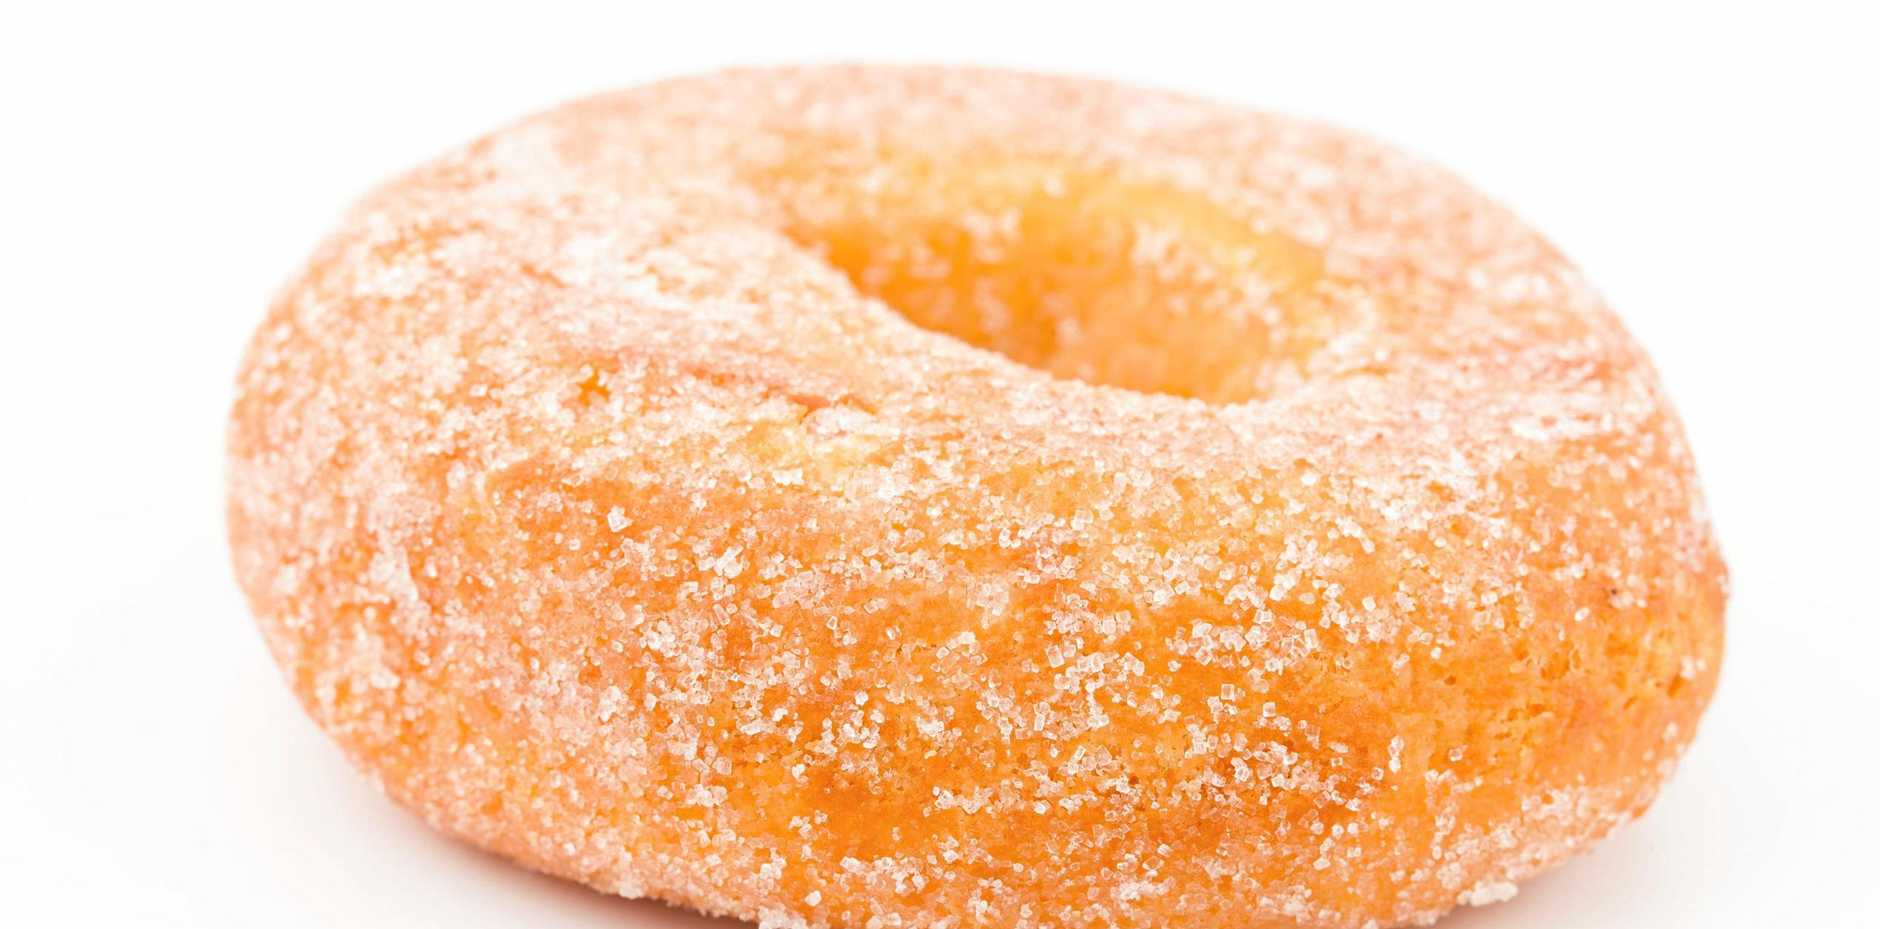 A man responded angrily when a bus passenger complimented his doughnuts.